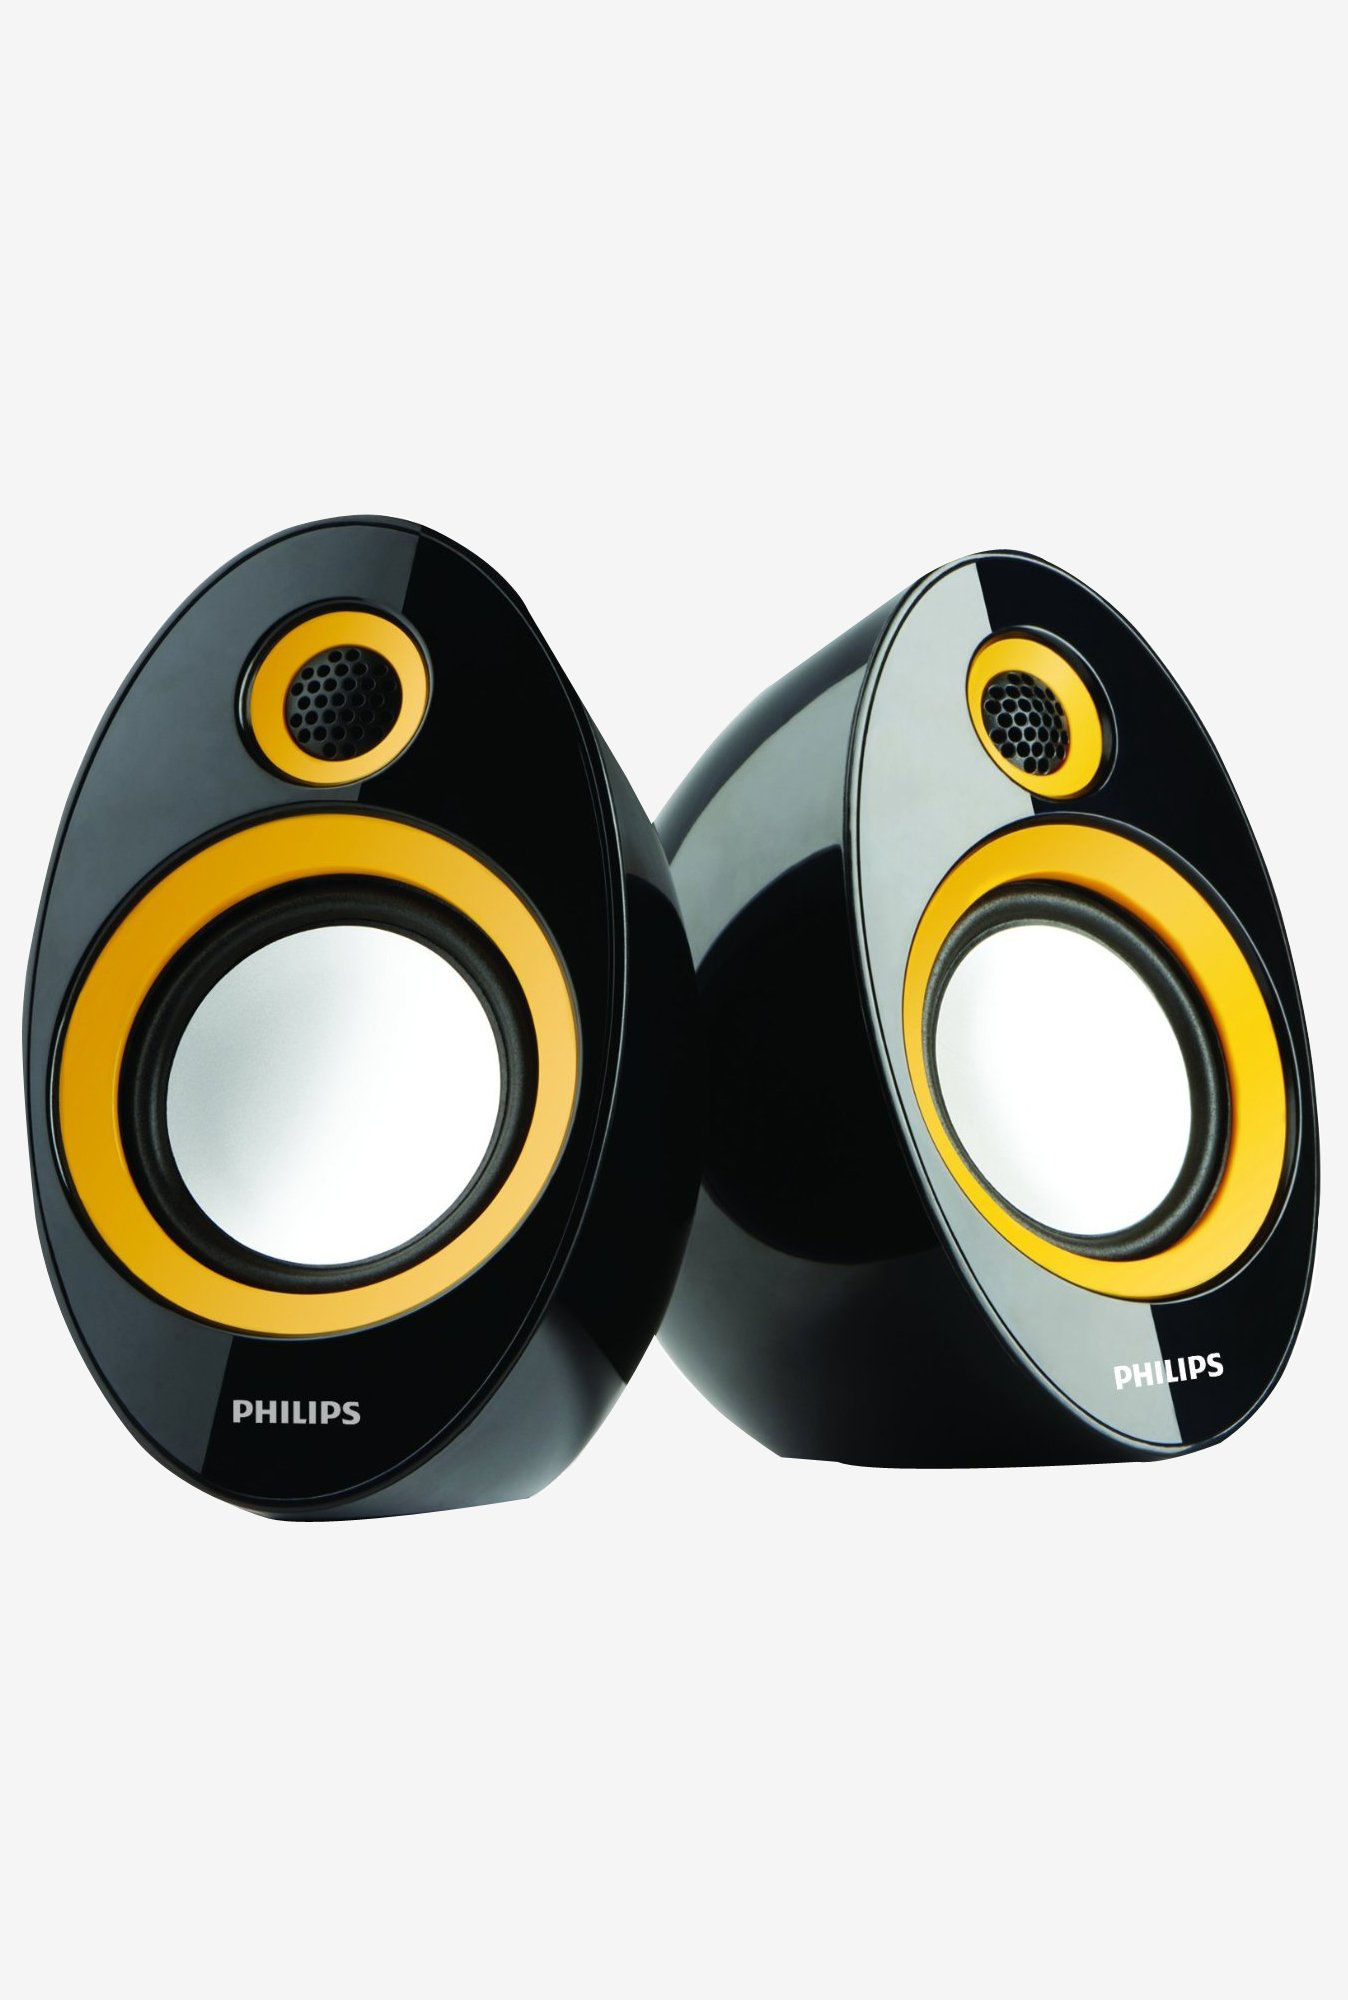 Philips SPA-60 2.0 Speaker with USB Plug (Yellow)